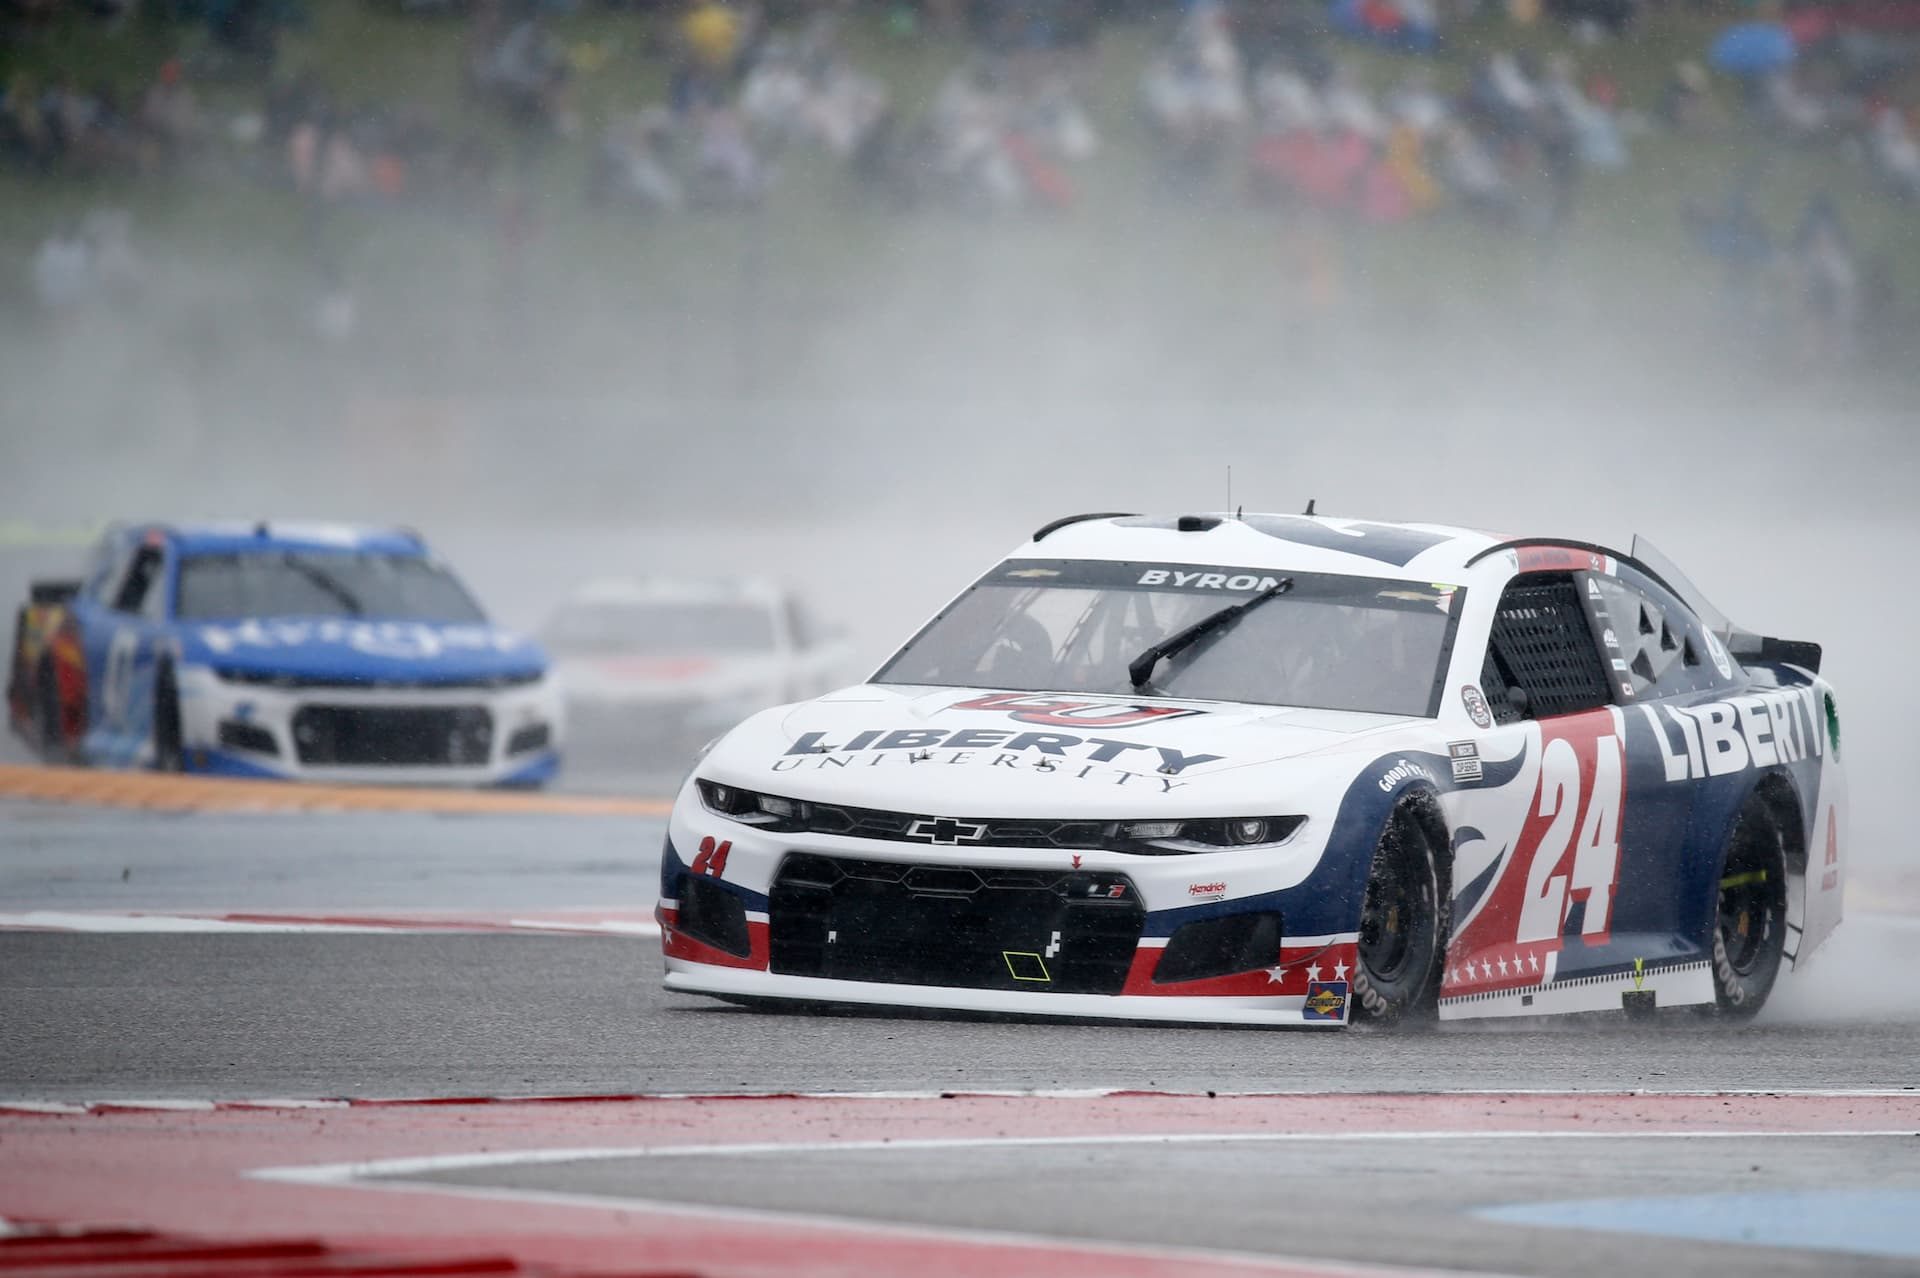 William Byron races through the esses at Circuit of the Americas.